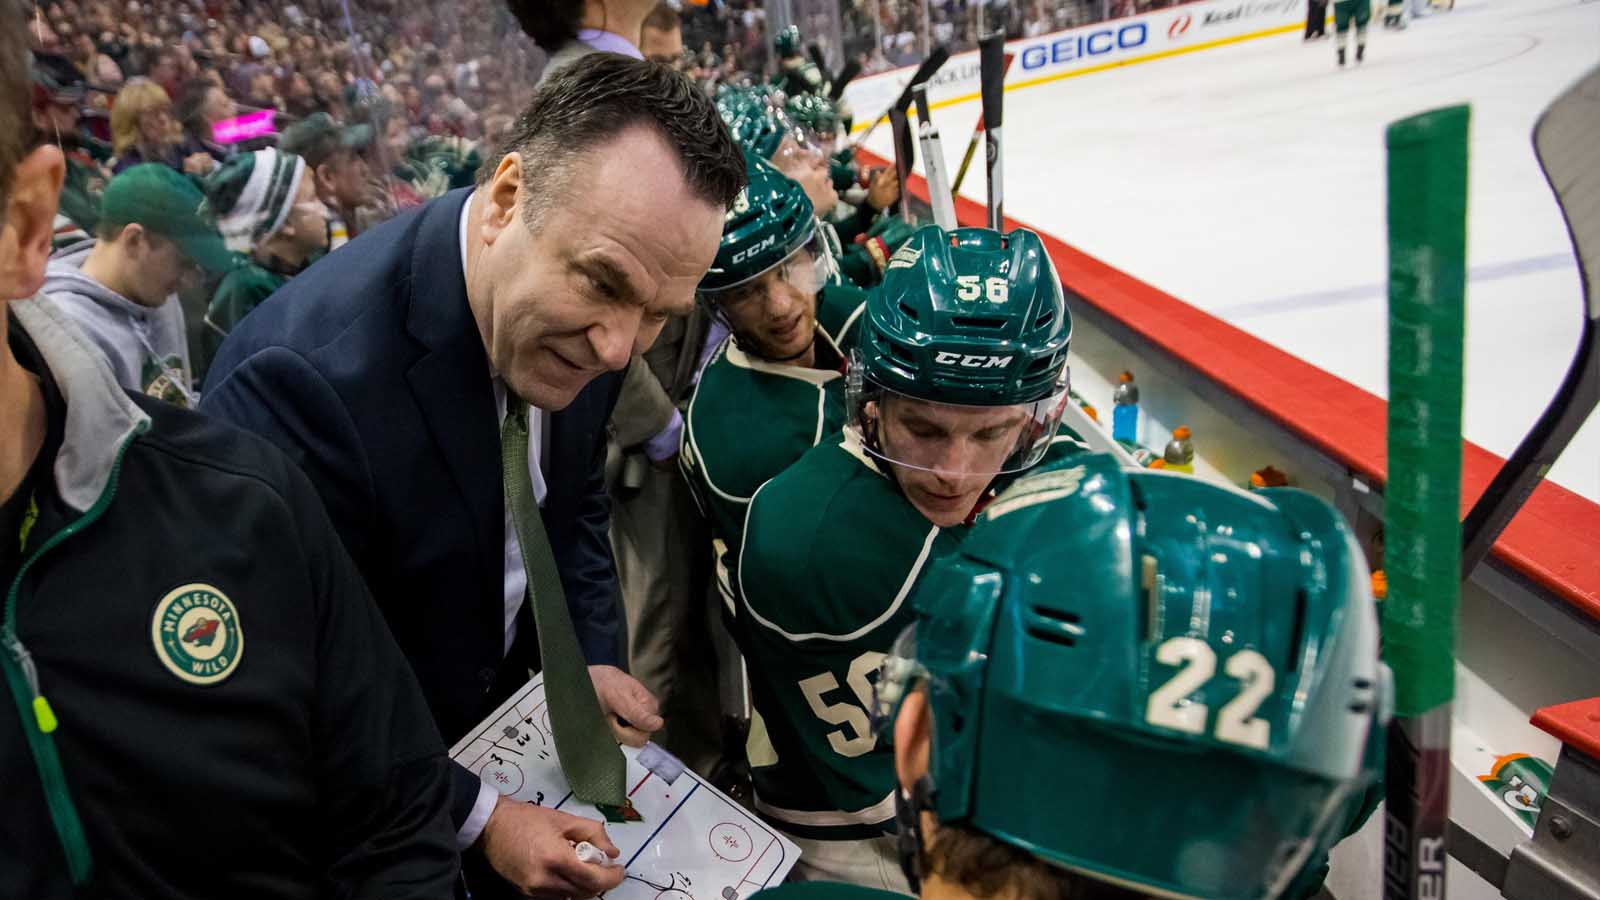 Questions ahead for Wild, Torchetti after roller-coaster ending